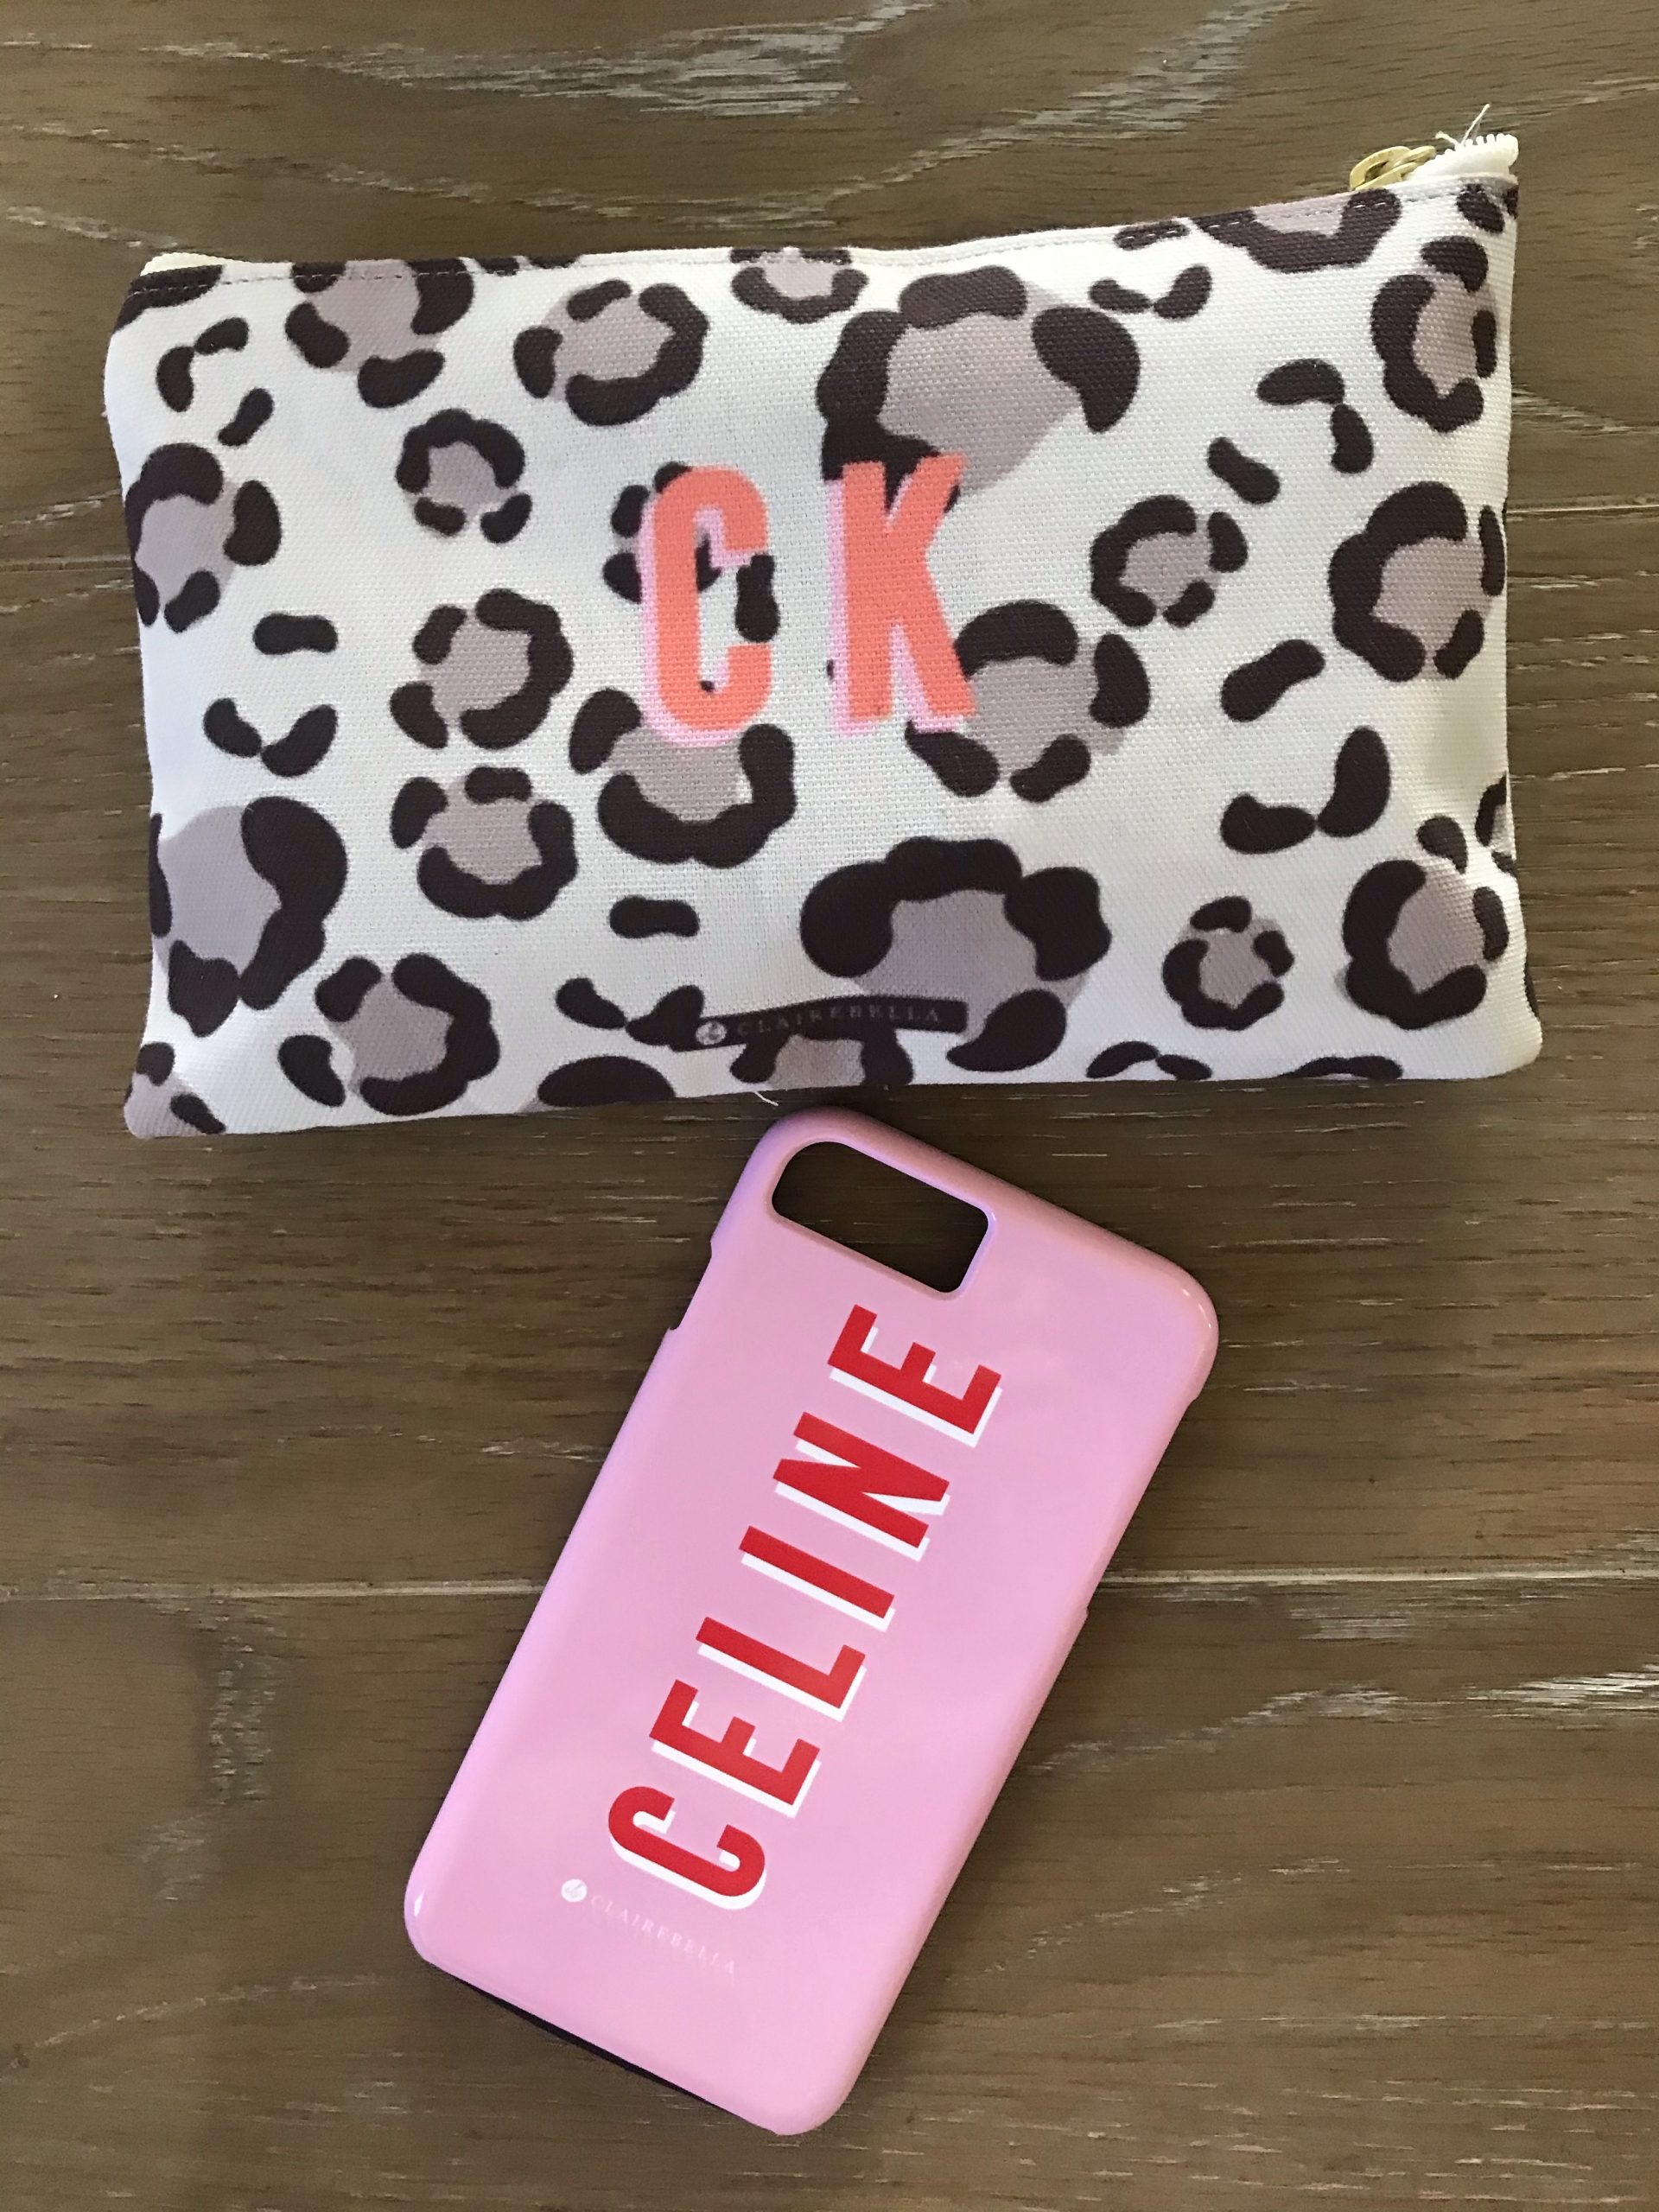 Customized makeup bag and phone case to gift